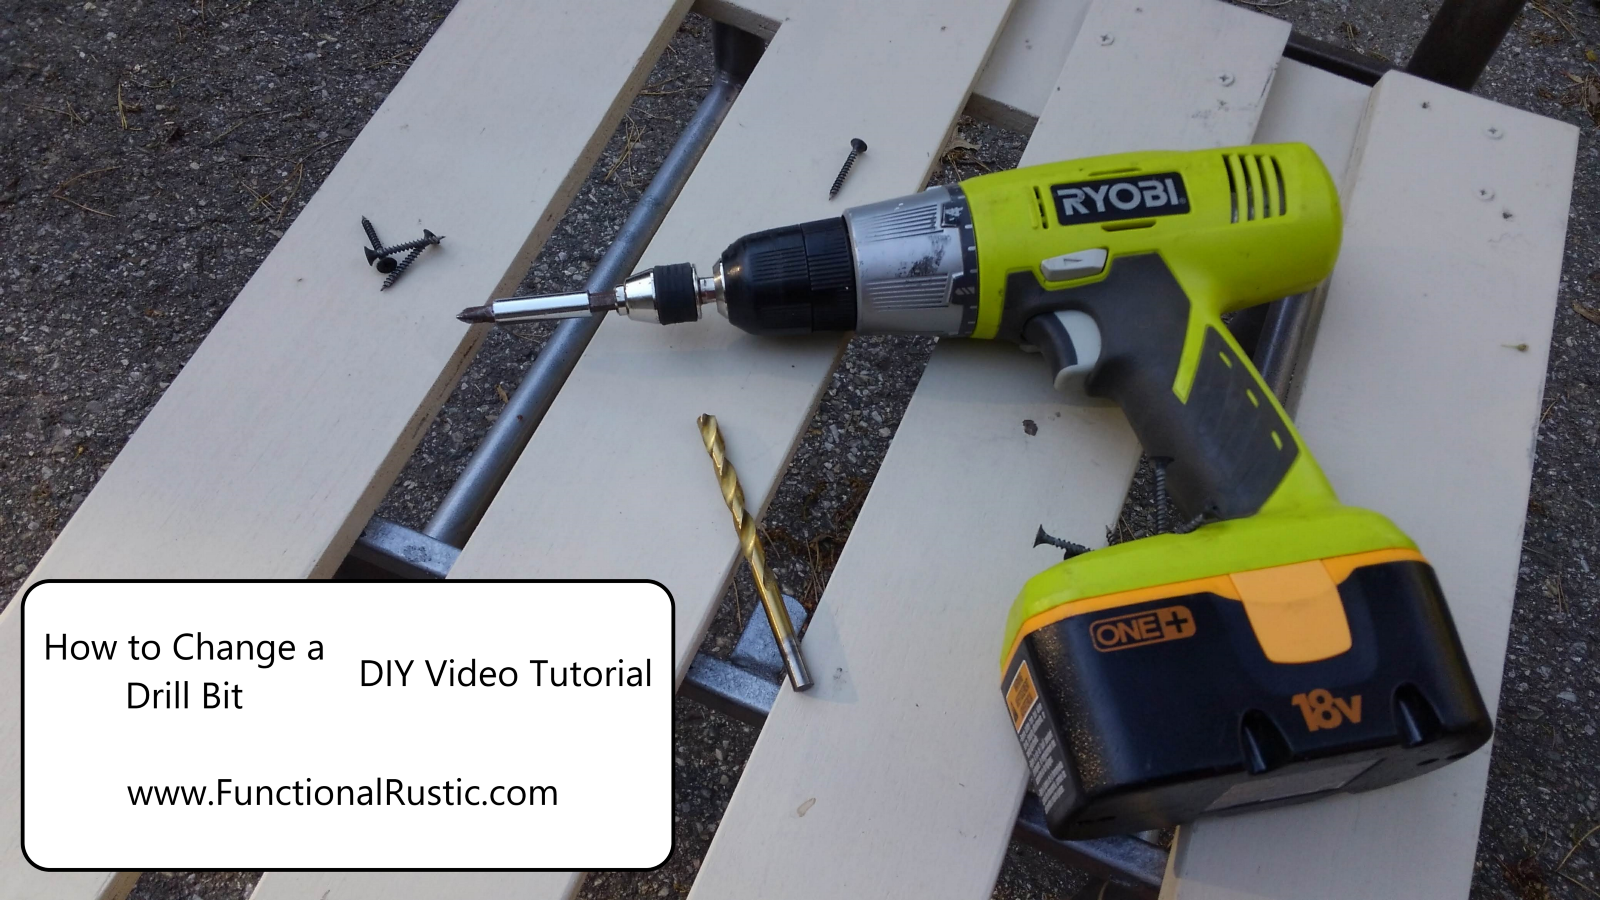 Watch How to Change a Drill Bit video